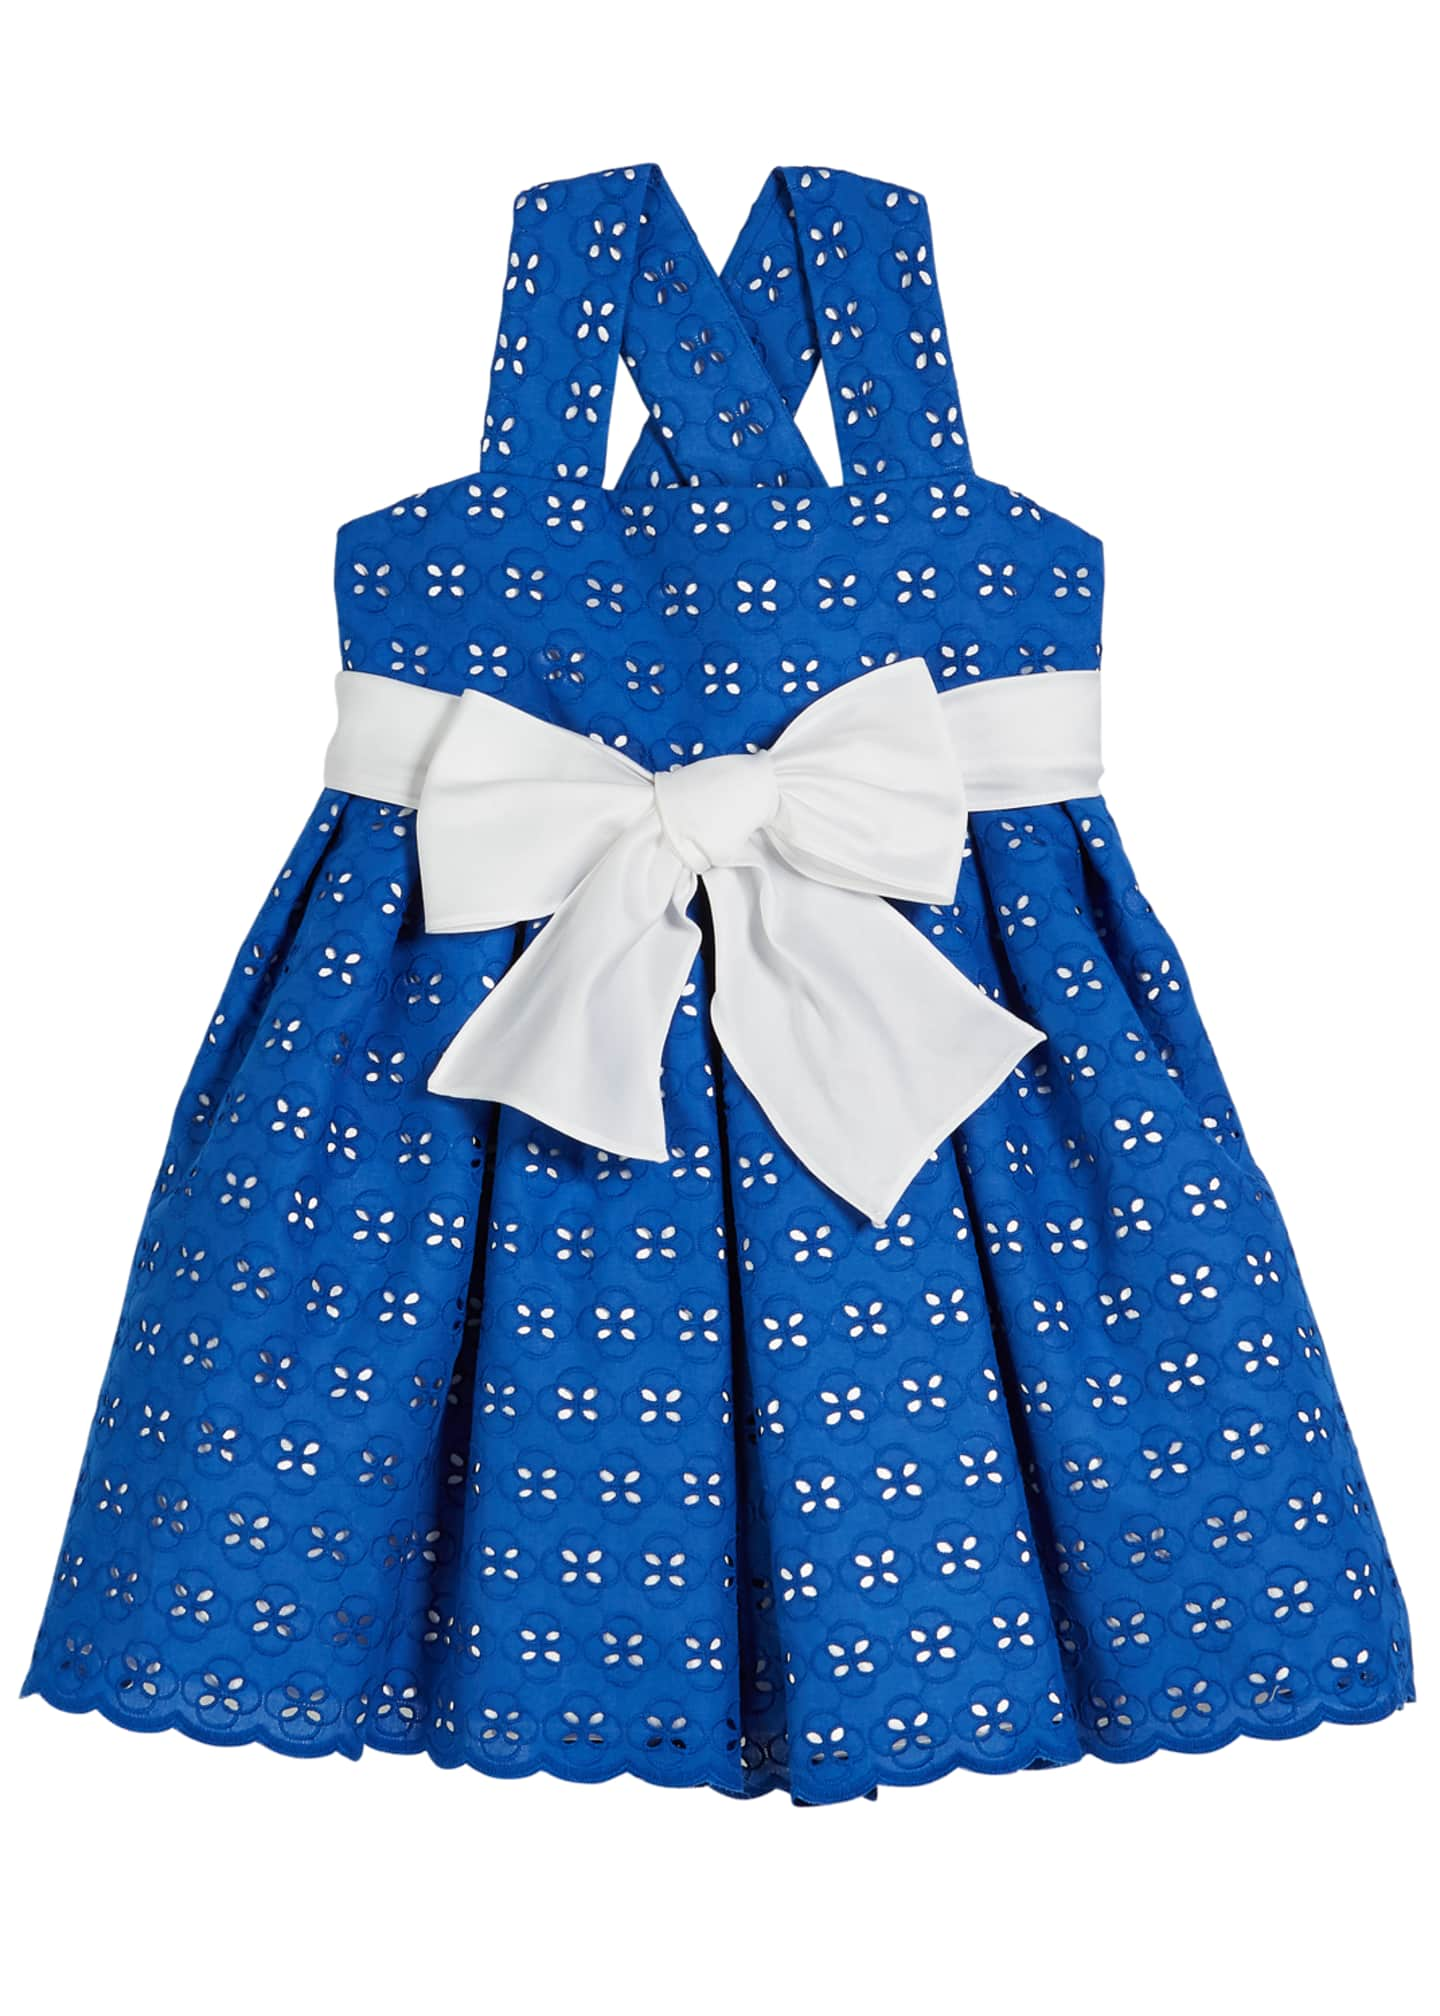 Helena Two-Tone Eyelet Sun Dress, Size 2-6